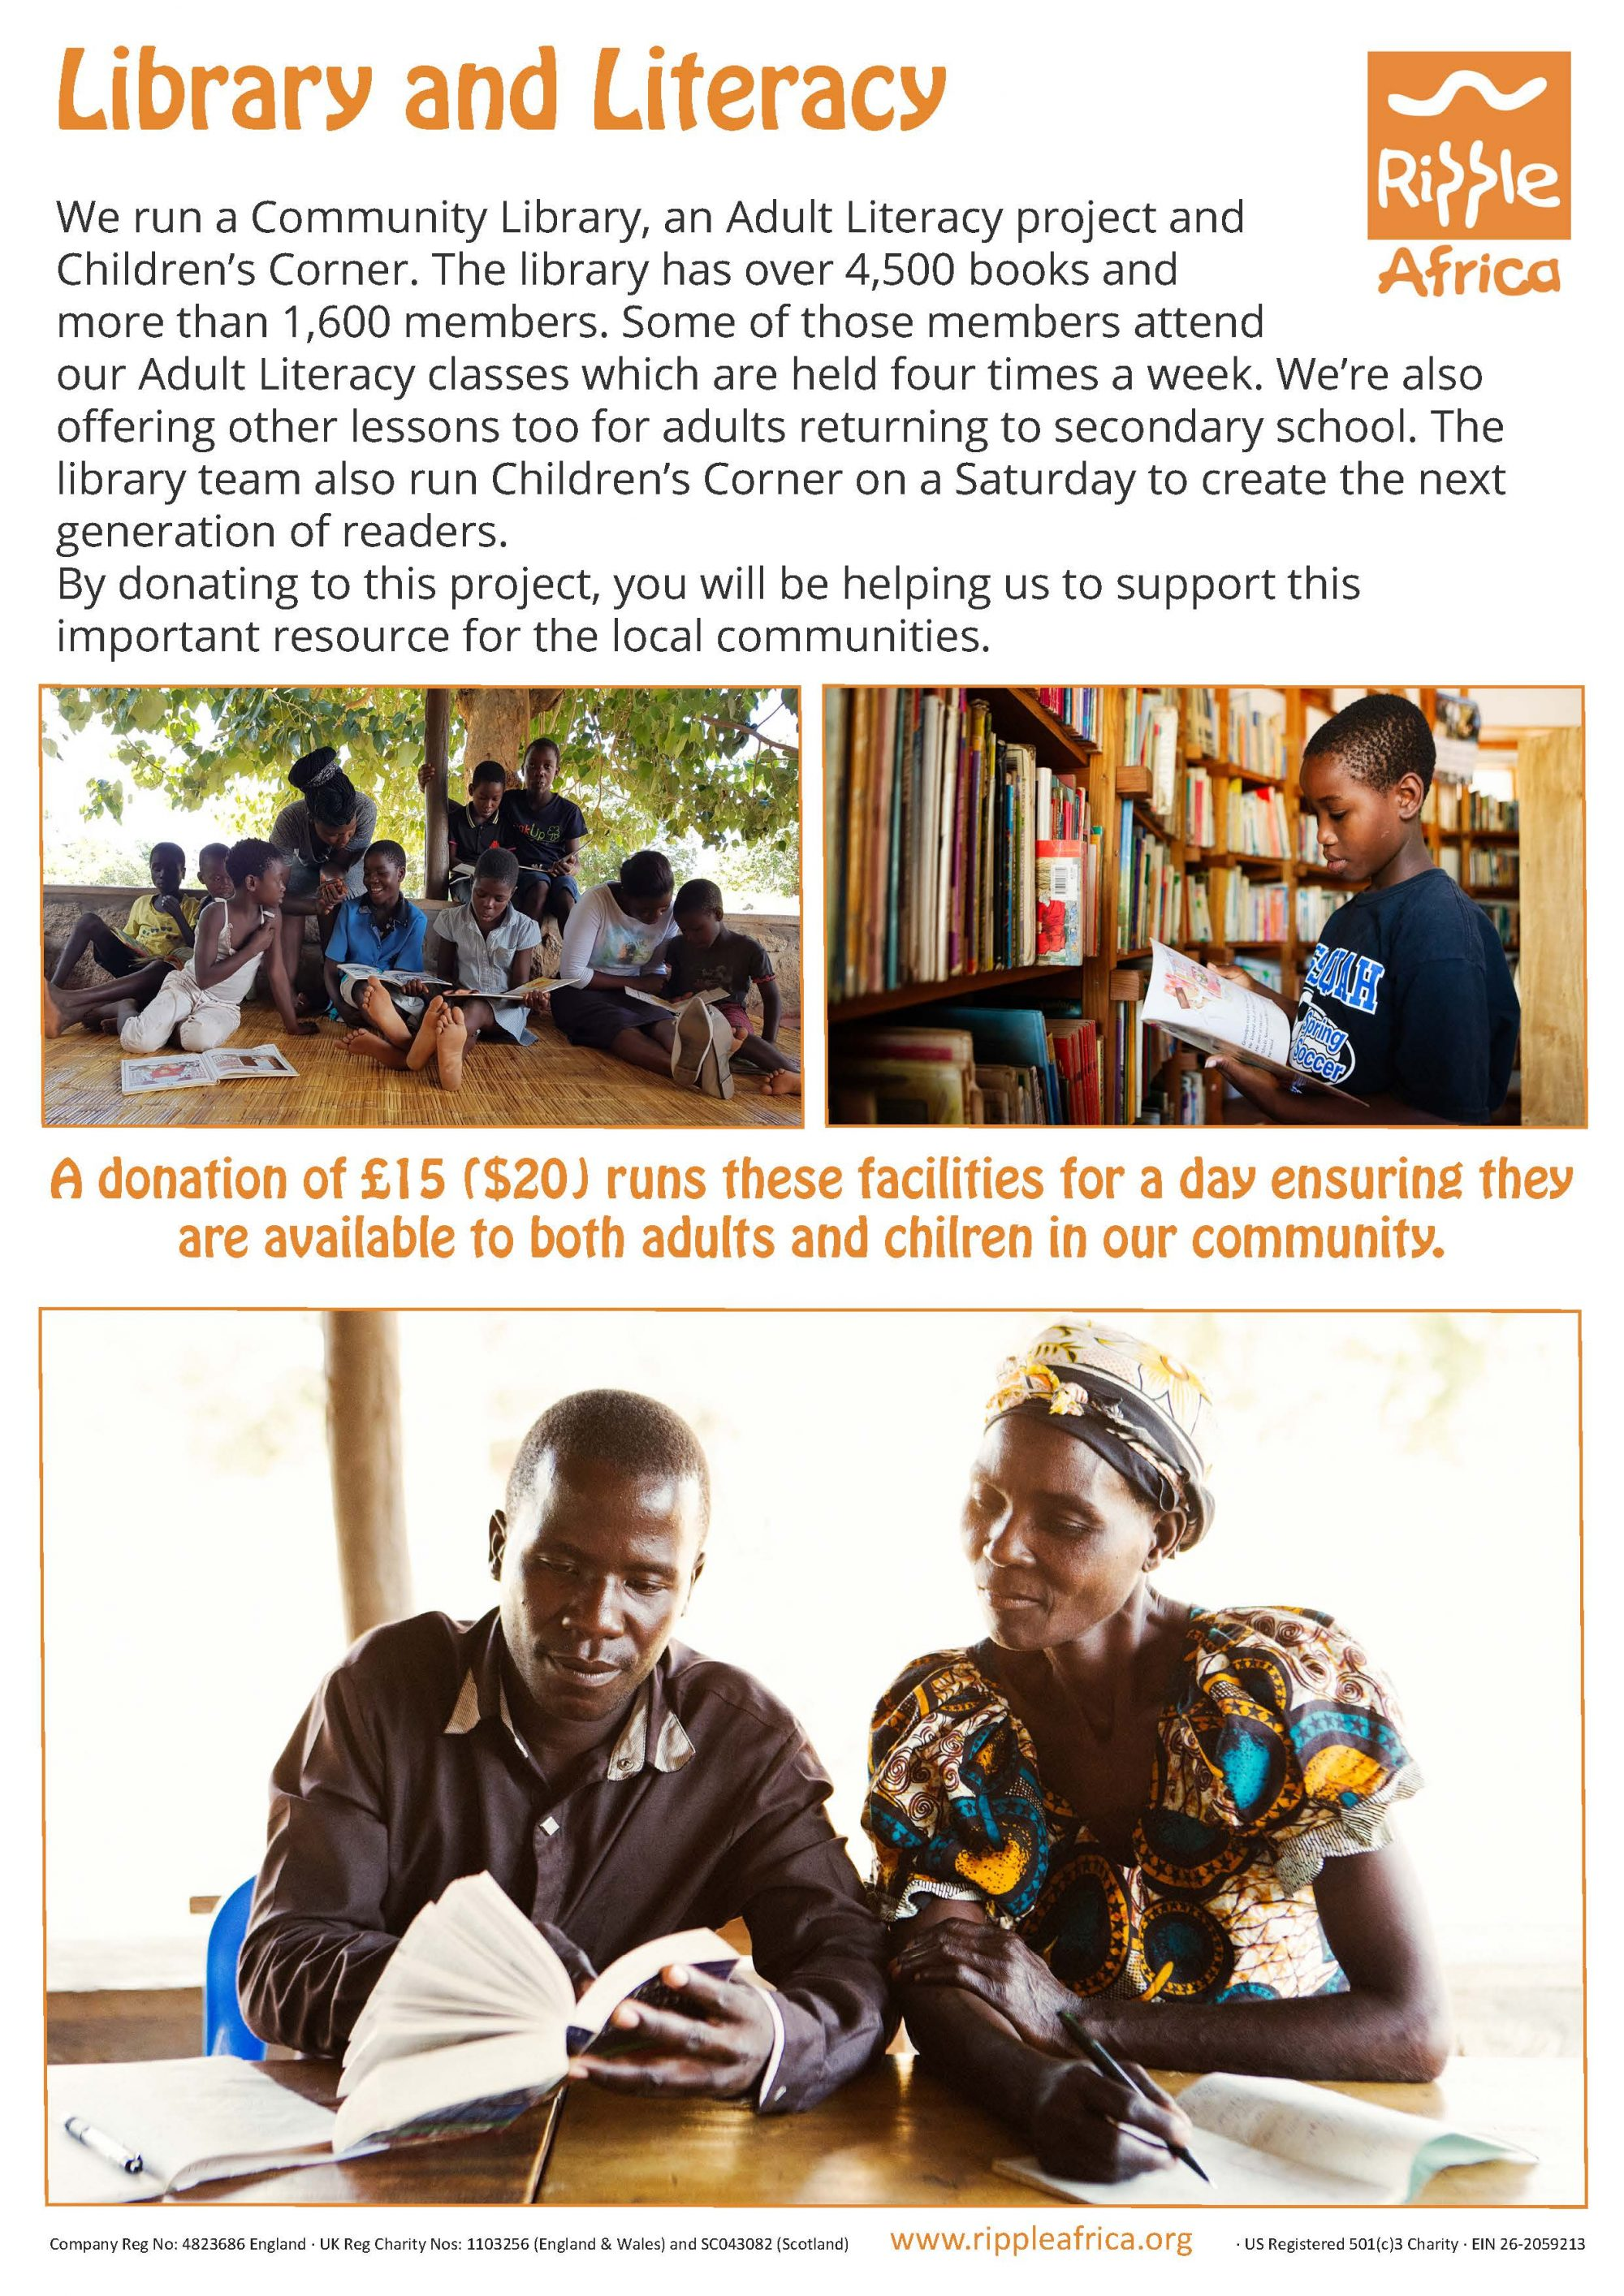 Donating to help adults learn to read and write in Africa